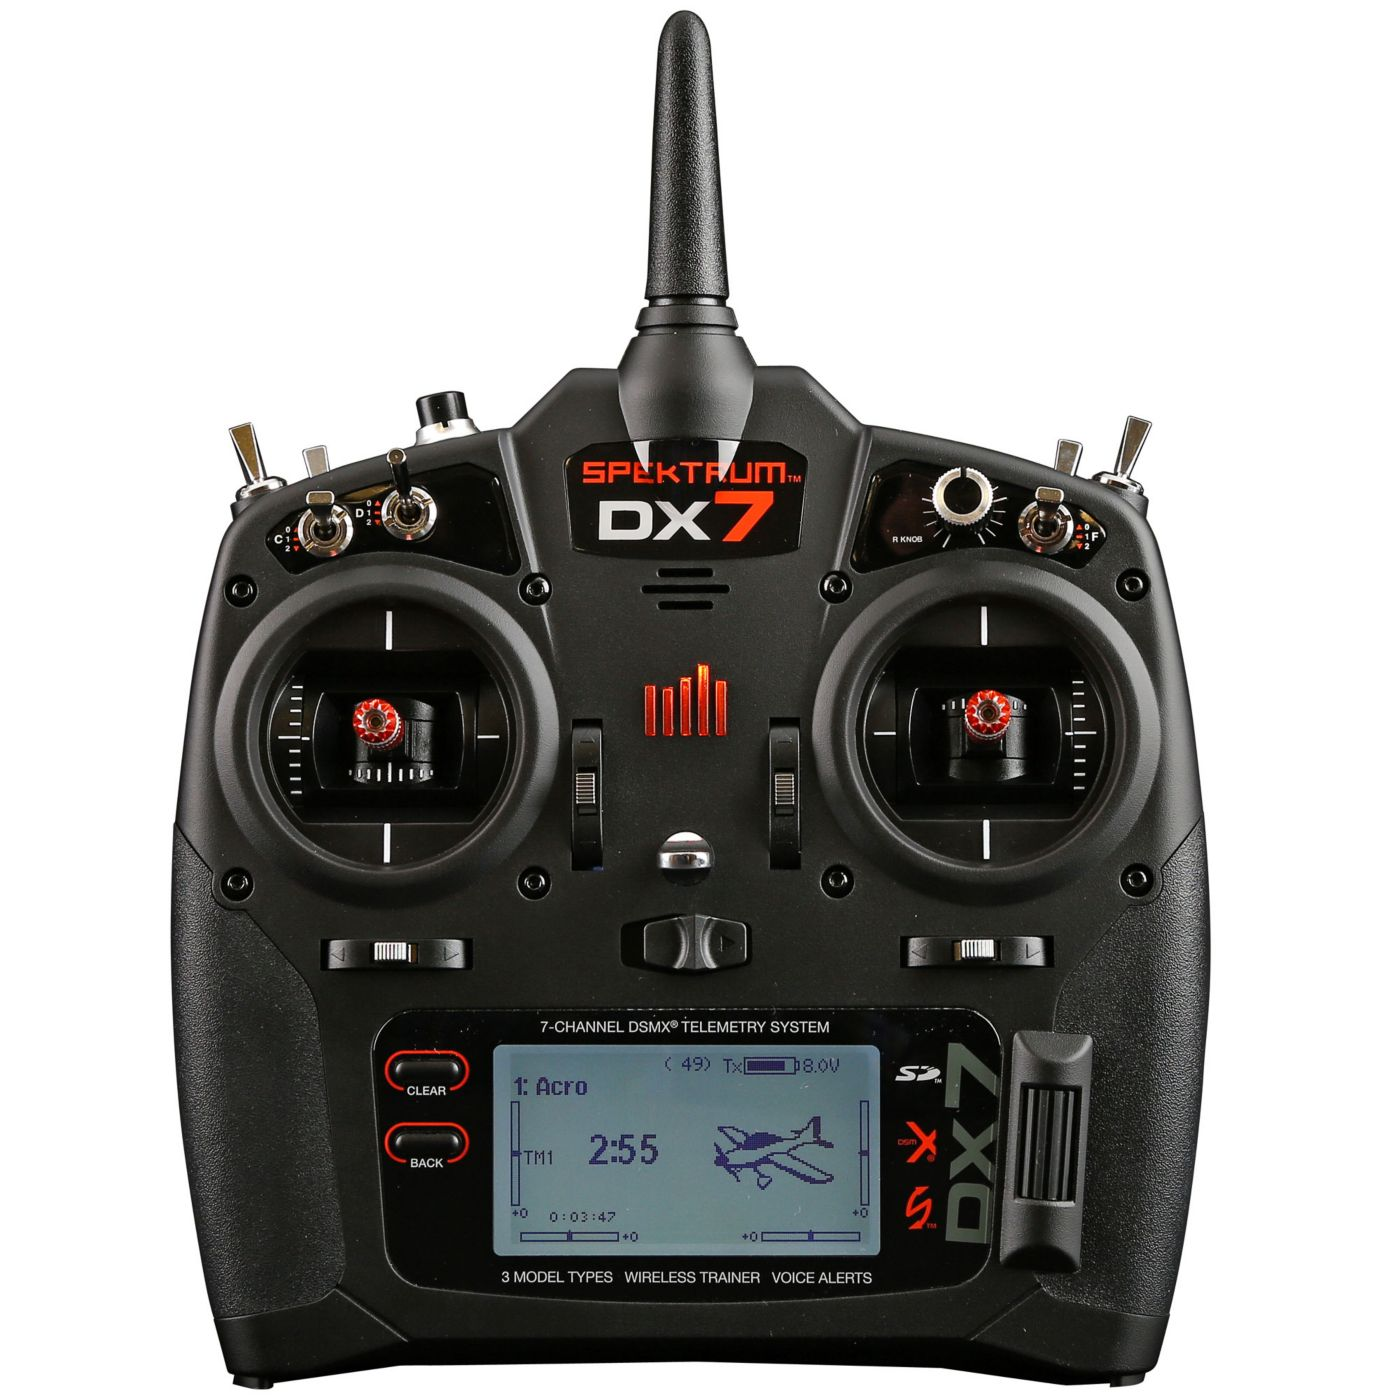 small resolution of image for dx7 7 channel dsmx transmitter gen 2 with ar8000 mode 2 from